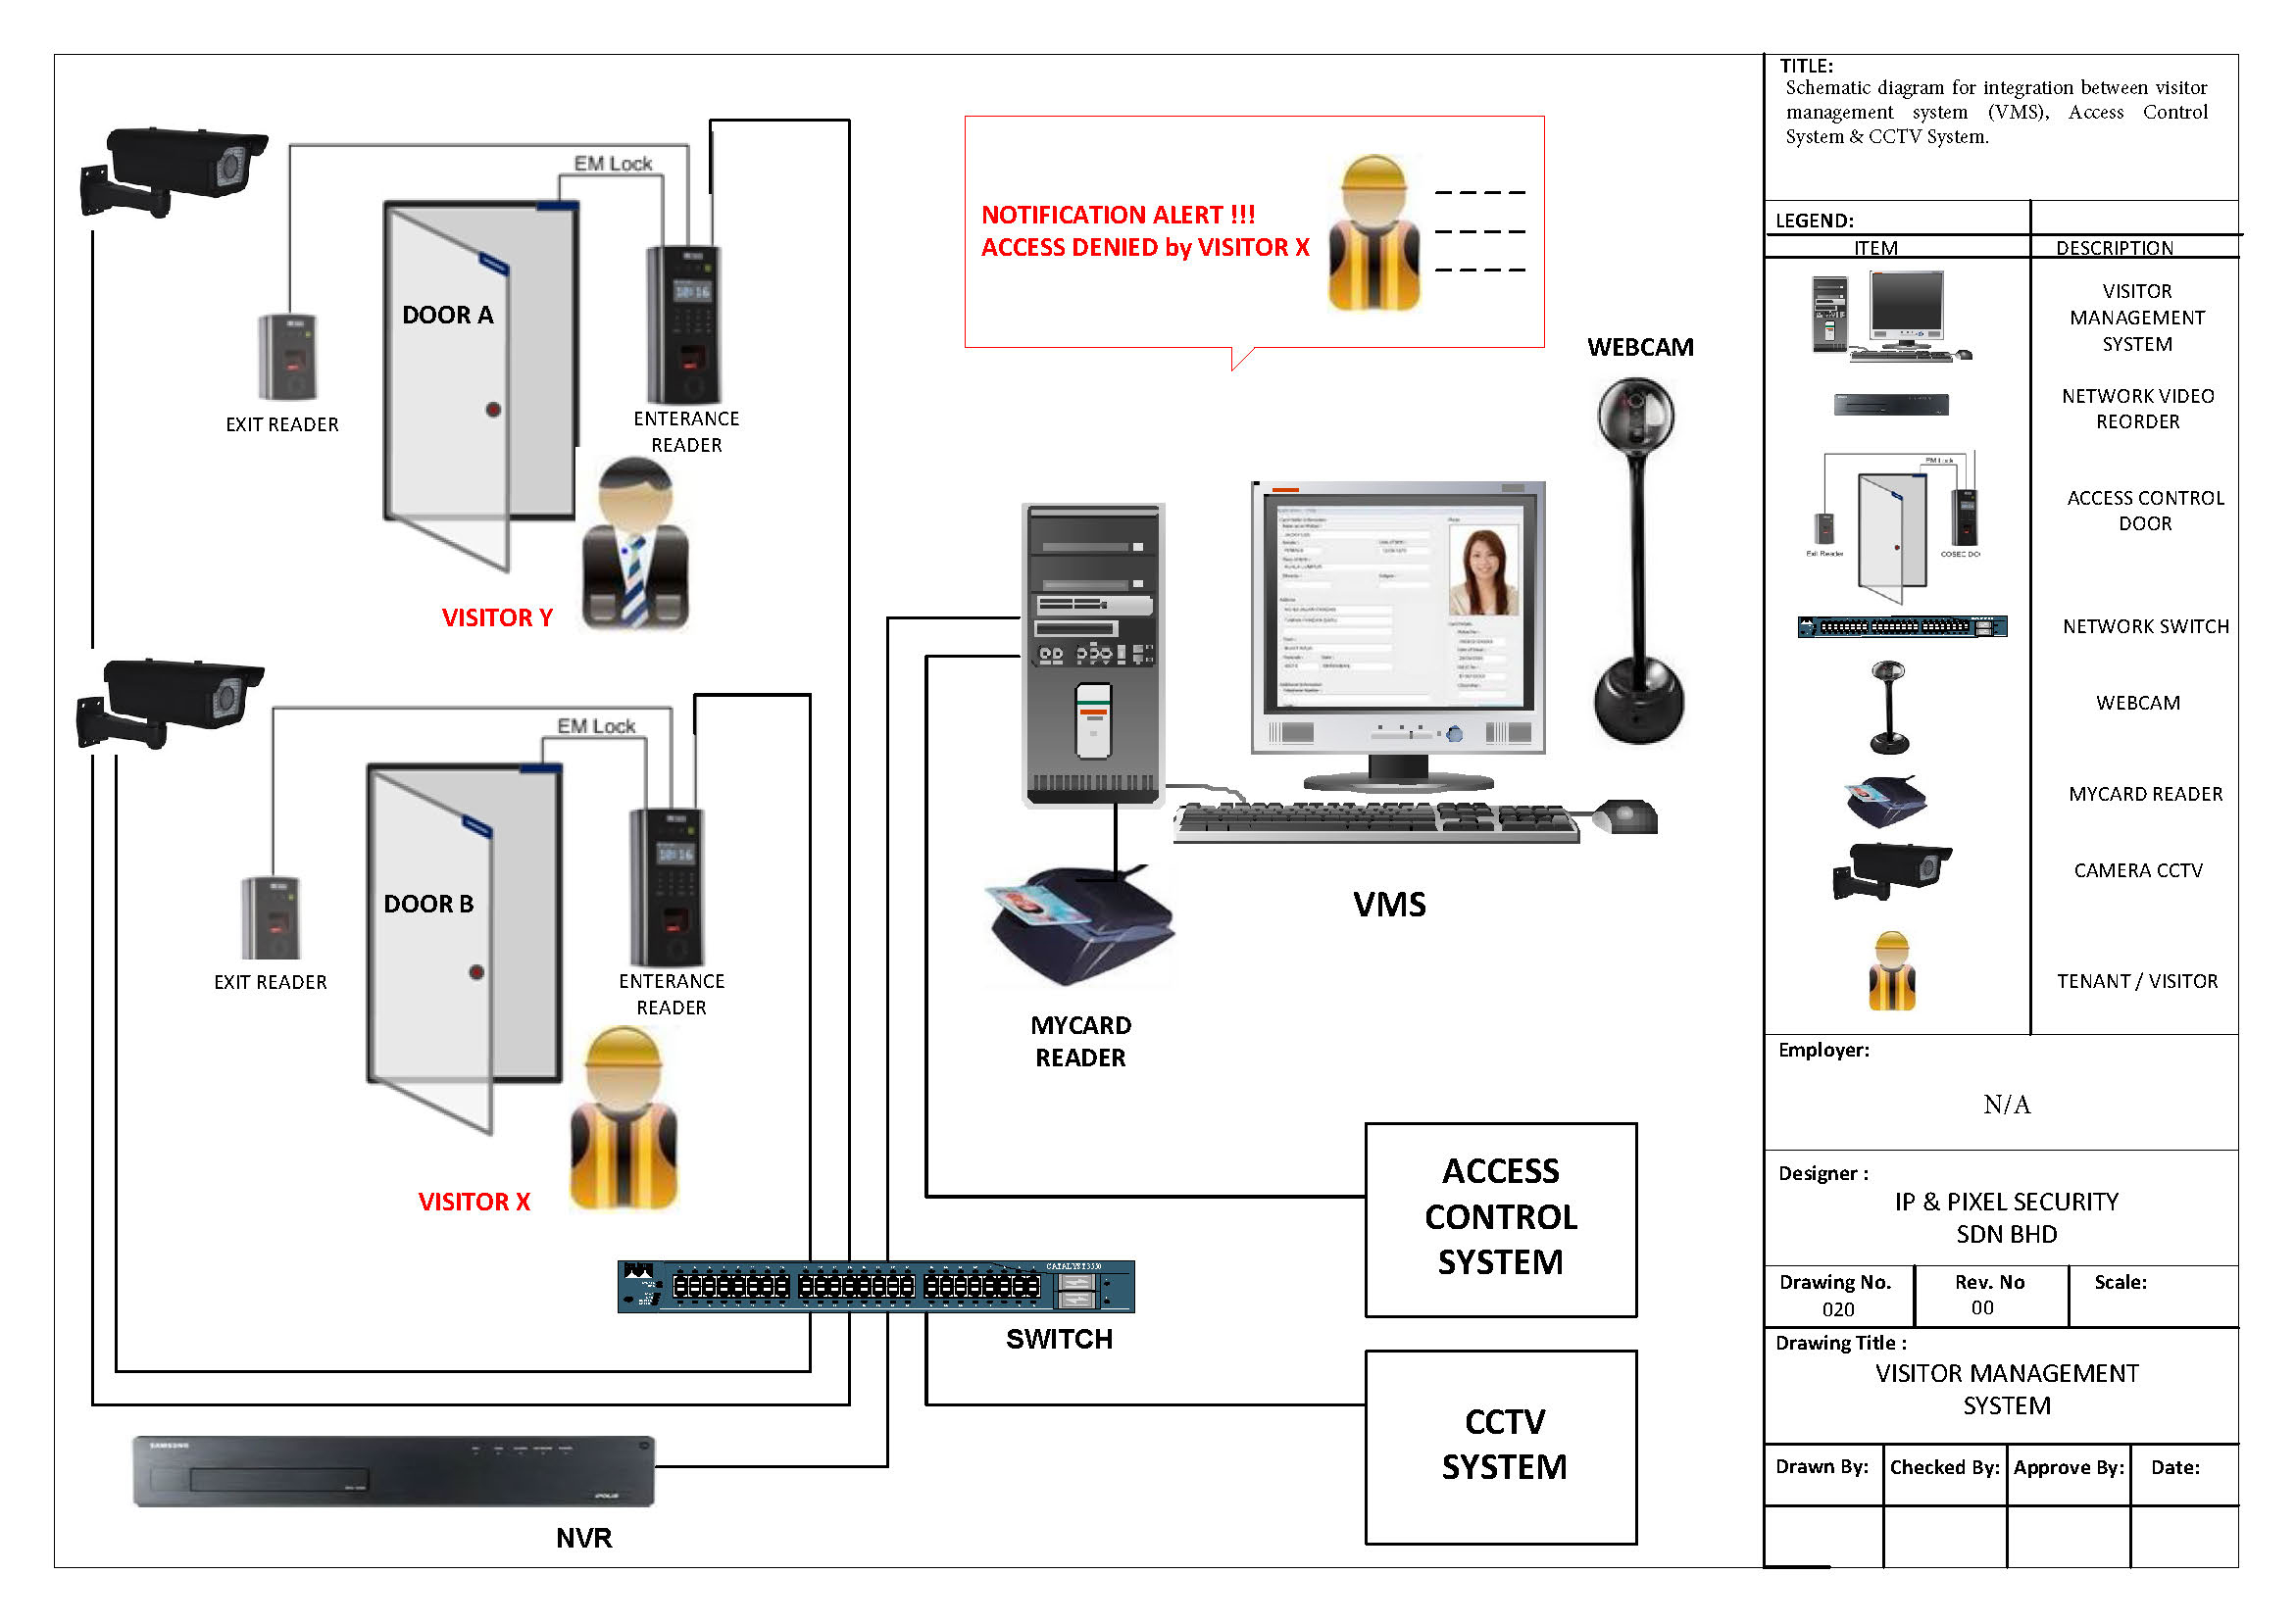 cctv camera wiring diagram pdf cctv ptz wiring schematic ptz controller wiring diagram collection